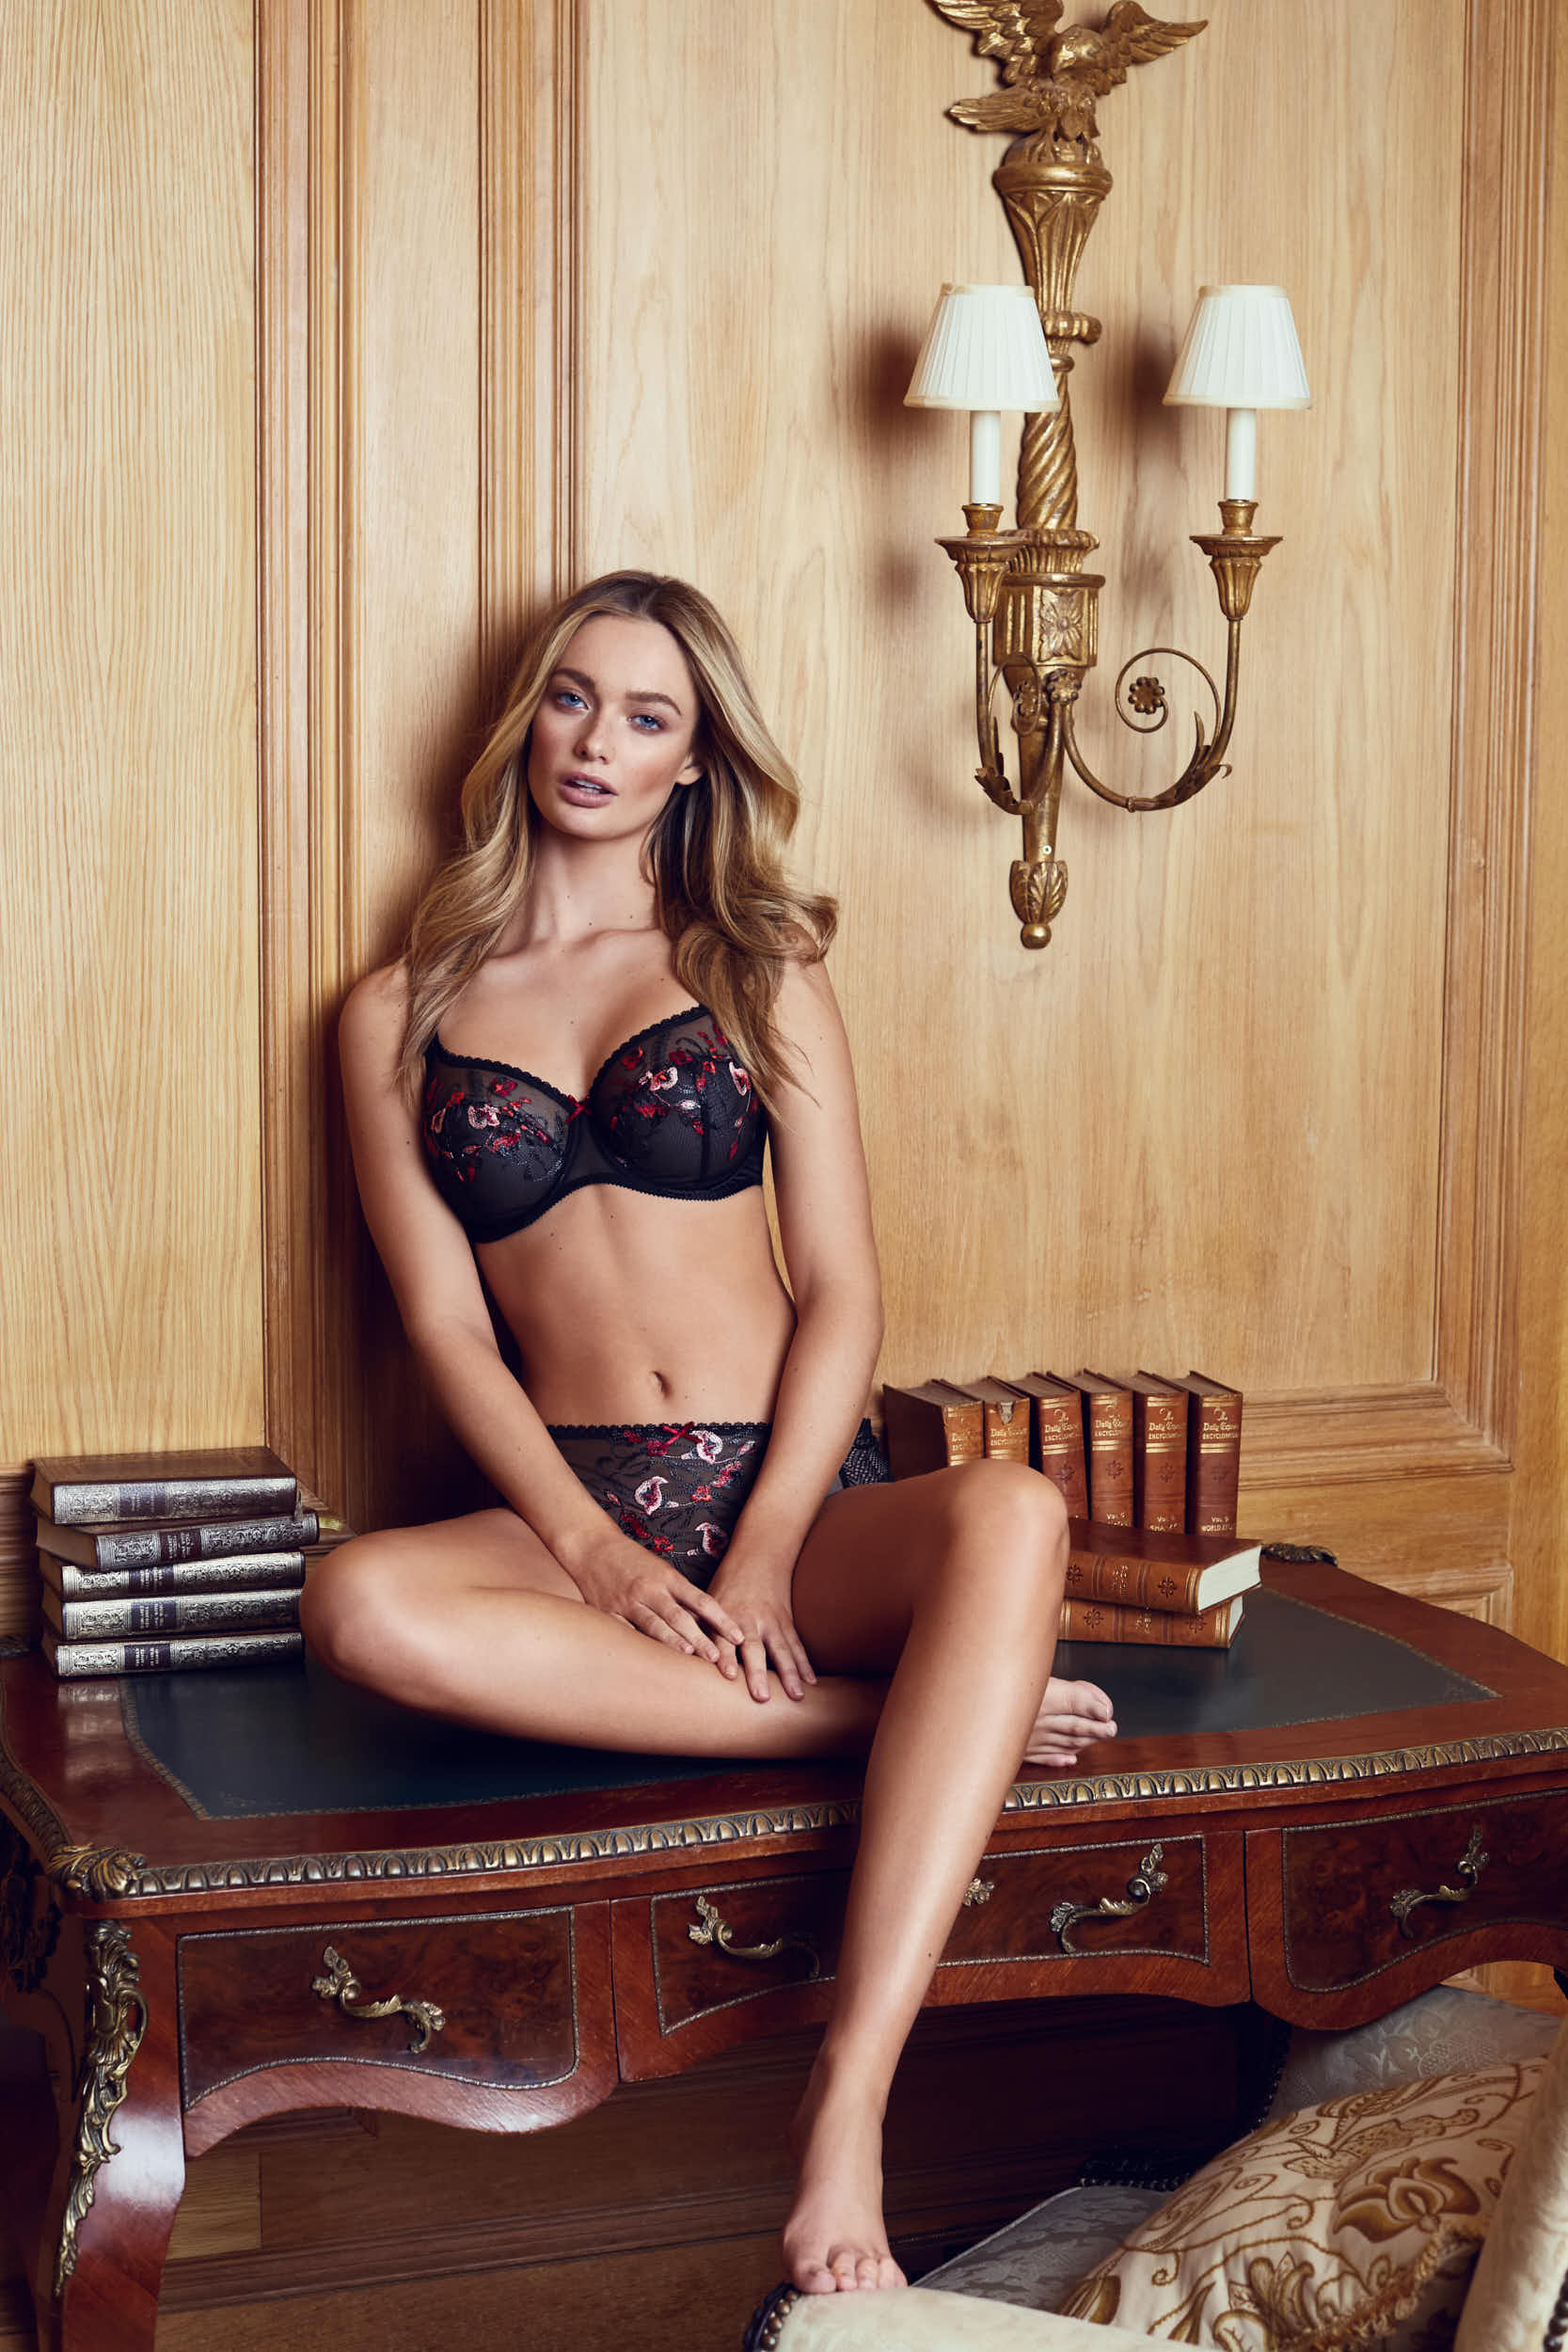 NC_BrownThomas_Lingerie_01_04